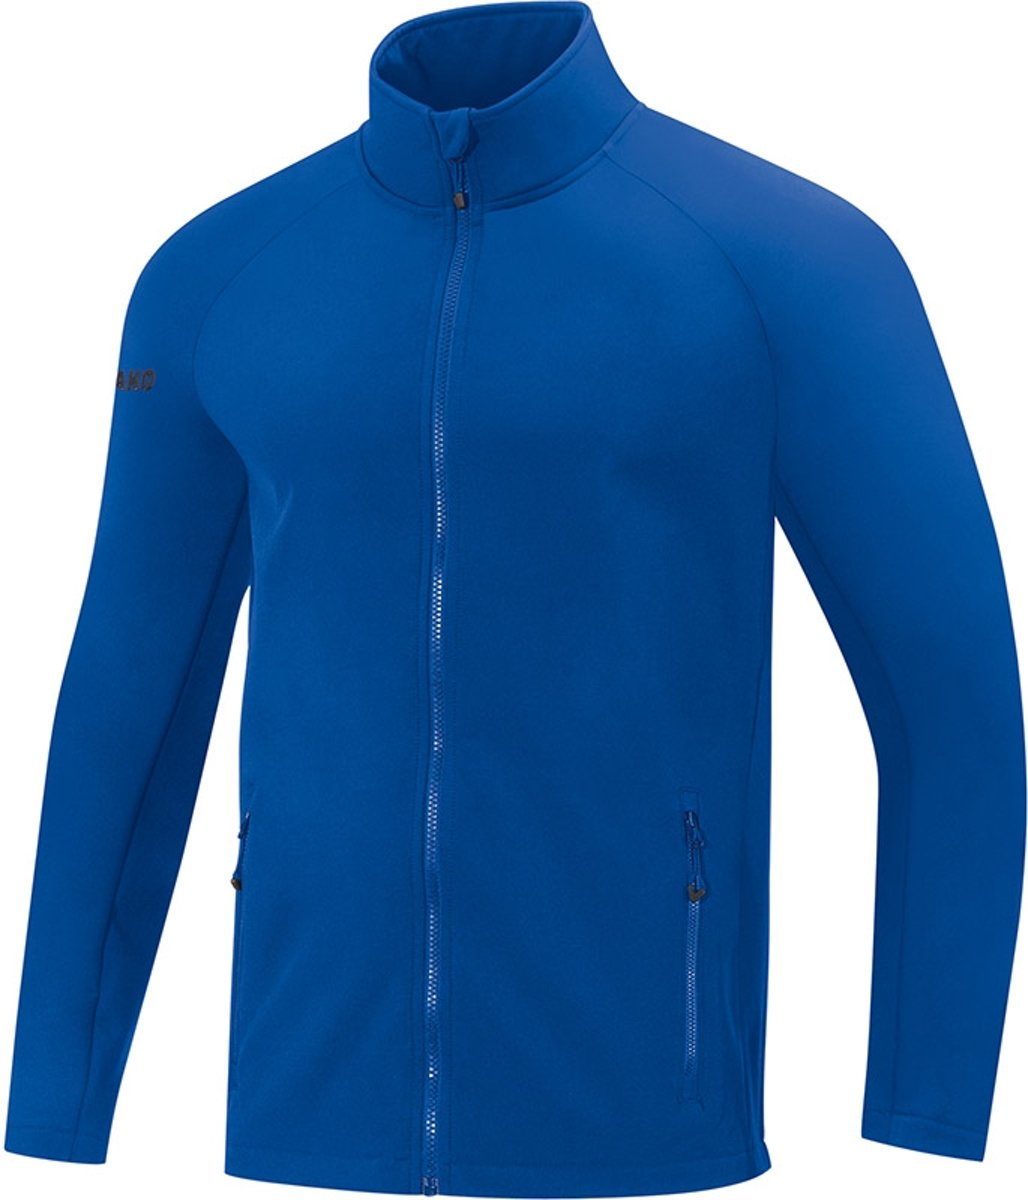 Jako Team Dames Softshell Jas - Softshelljassen  - blauw - 42